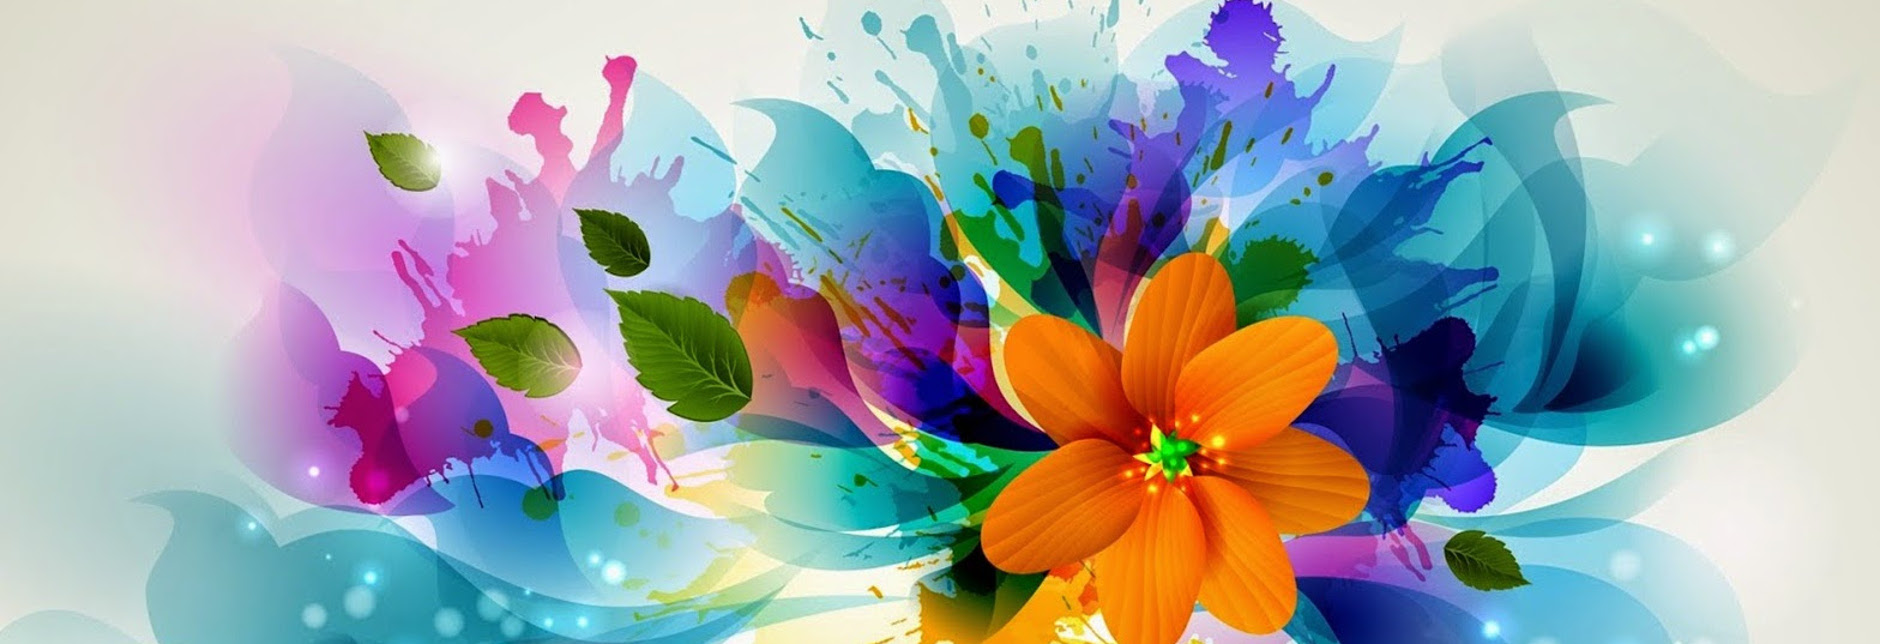 flowers-background-header.jpg